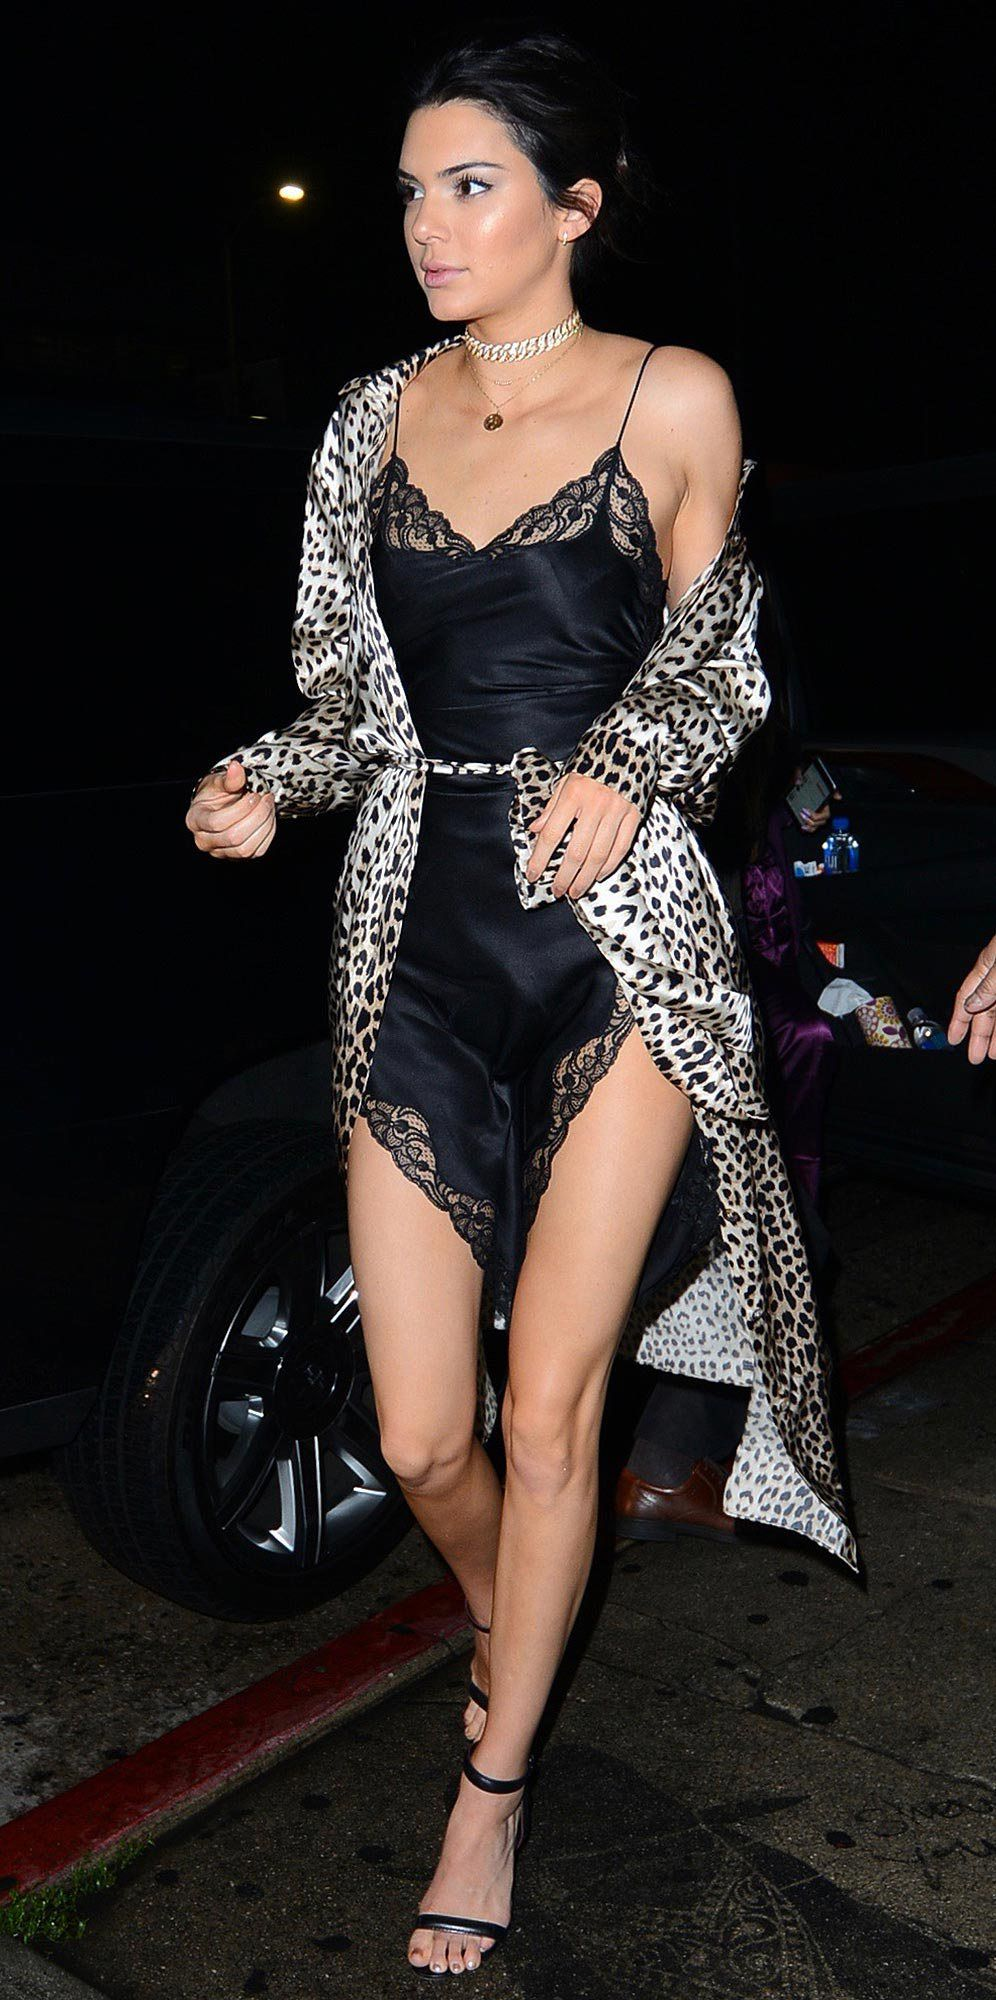 95753c8d61ae1 Kendall Jenner in a black lingerie-inspired dress and leopard duster coat  for New Year s Eve 2016 - click ahead to see Bella Hadid s sexy sheer  outfit!